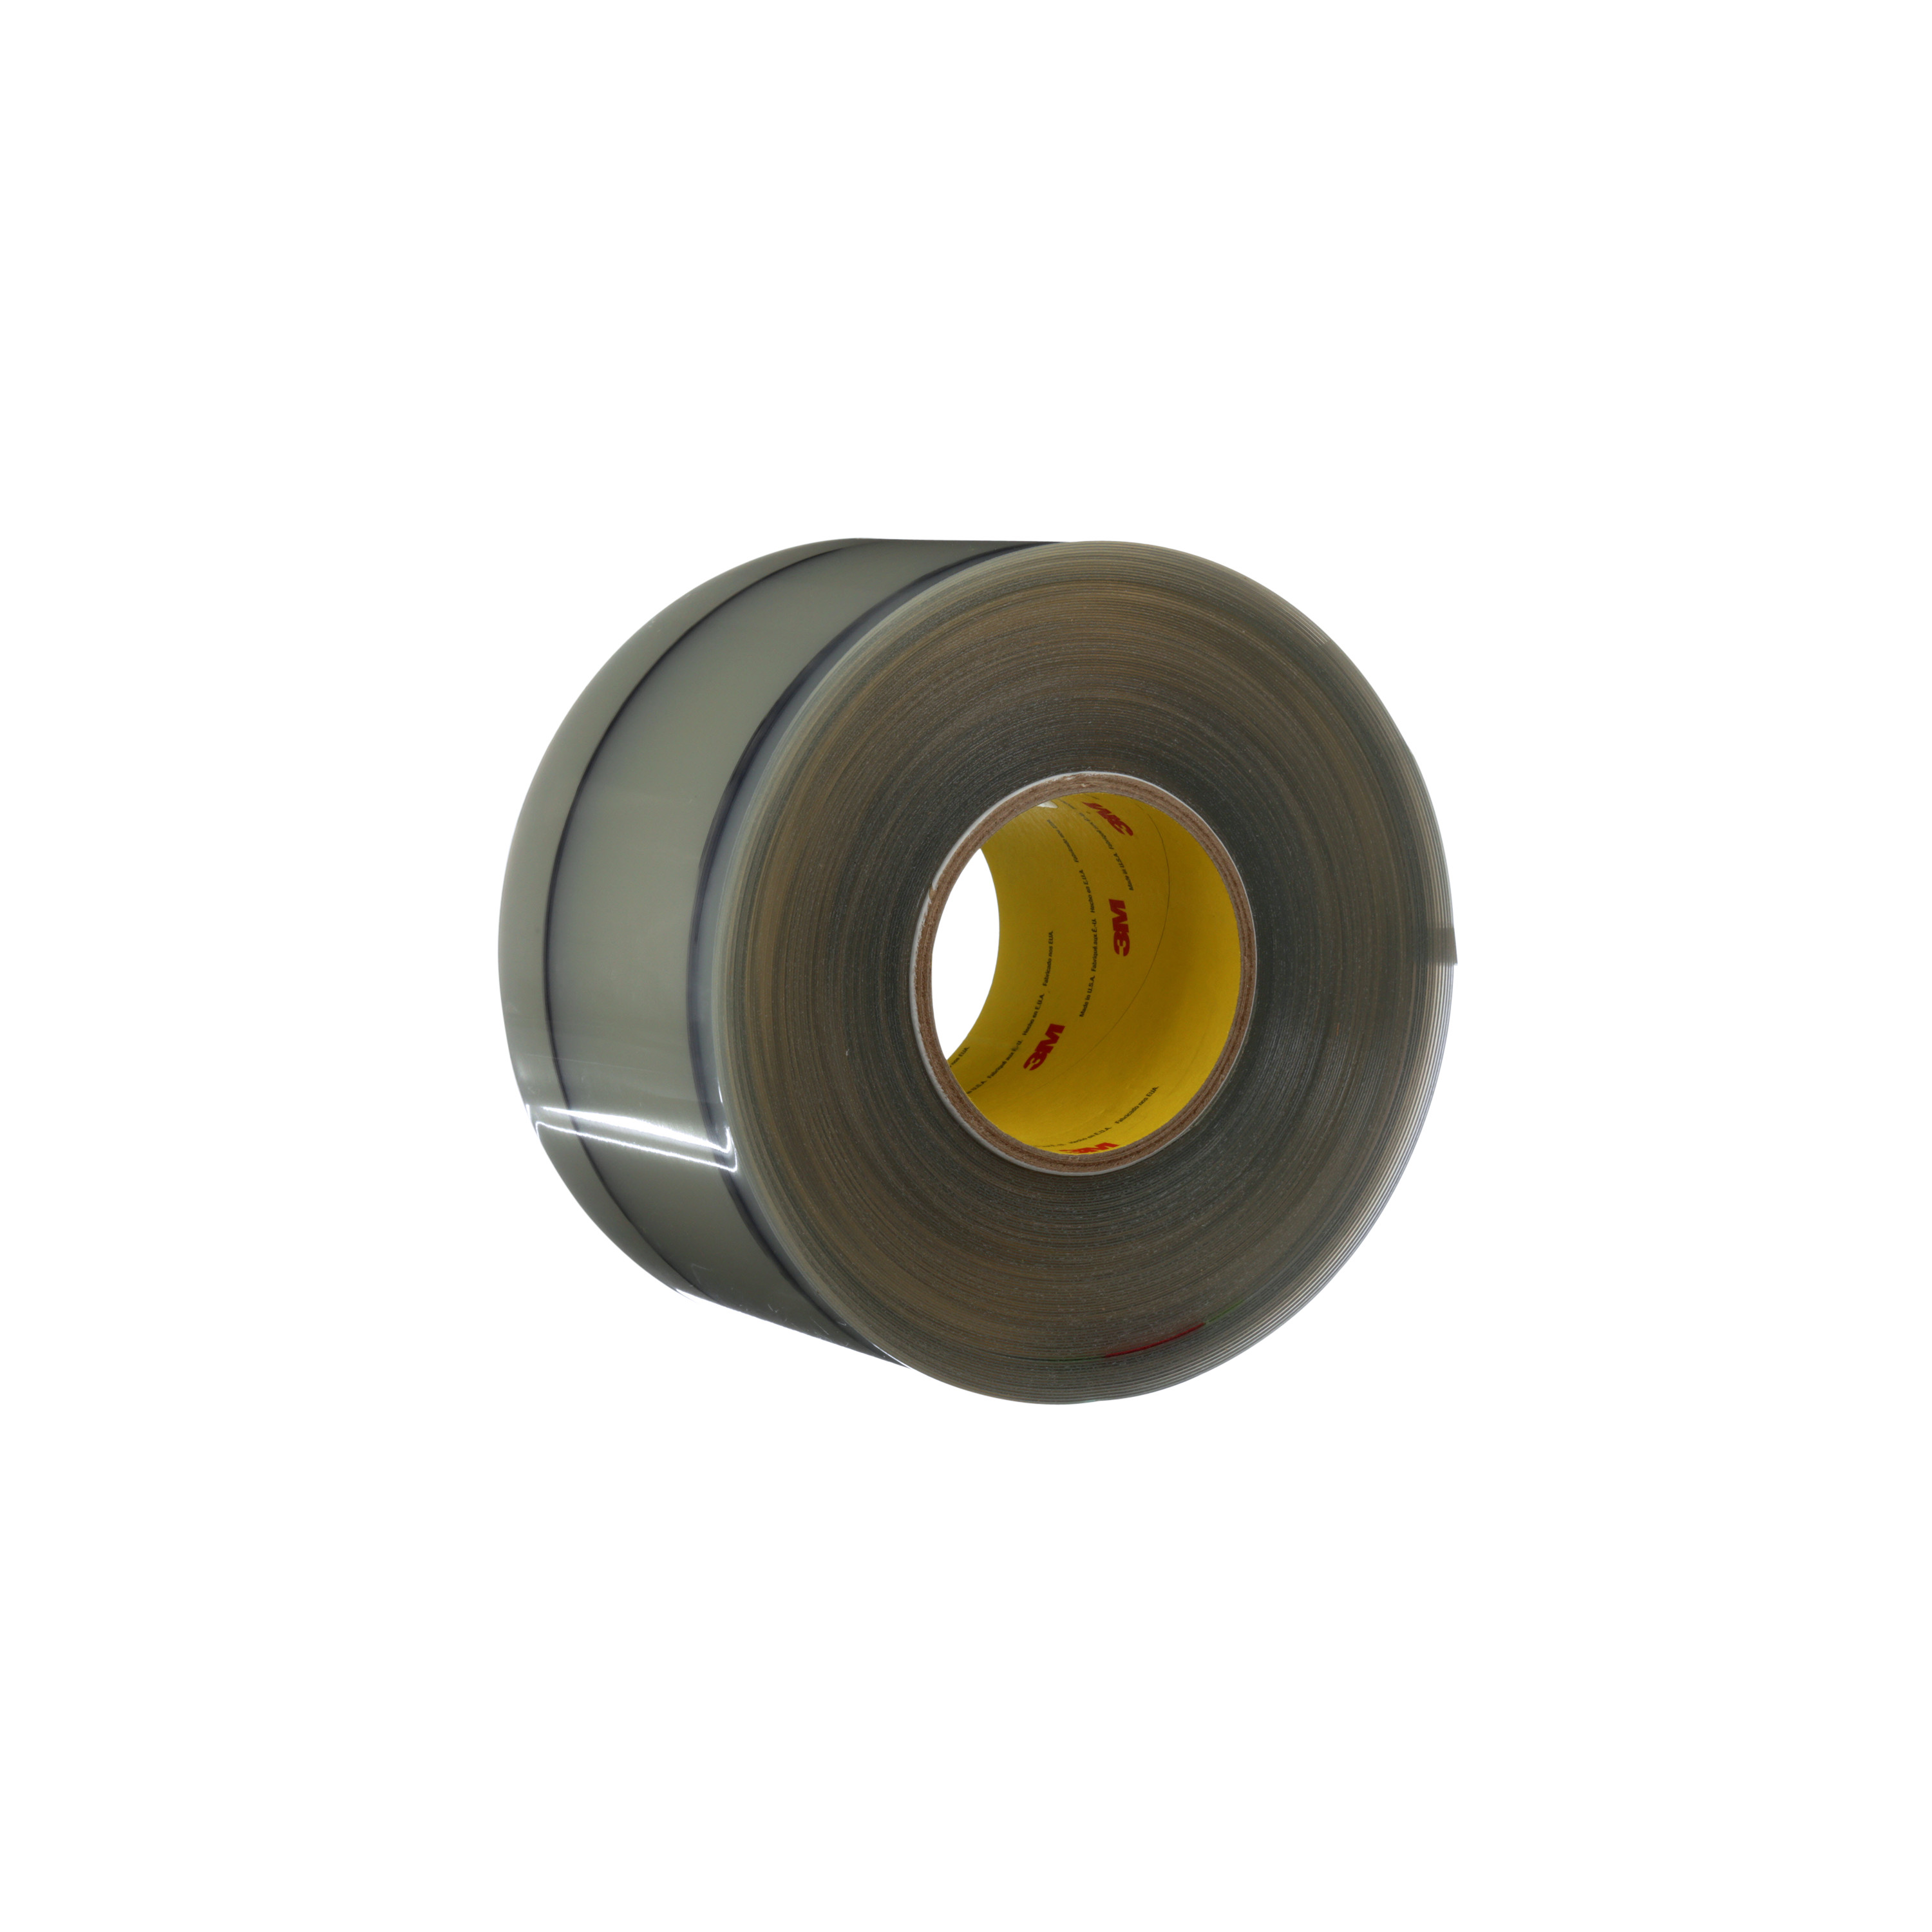 3M™ Polyurethane Protective Tape 8663DL Transparent Dual Liner, 12 in x 3 yd, 1 Roll/Case, Sample